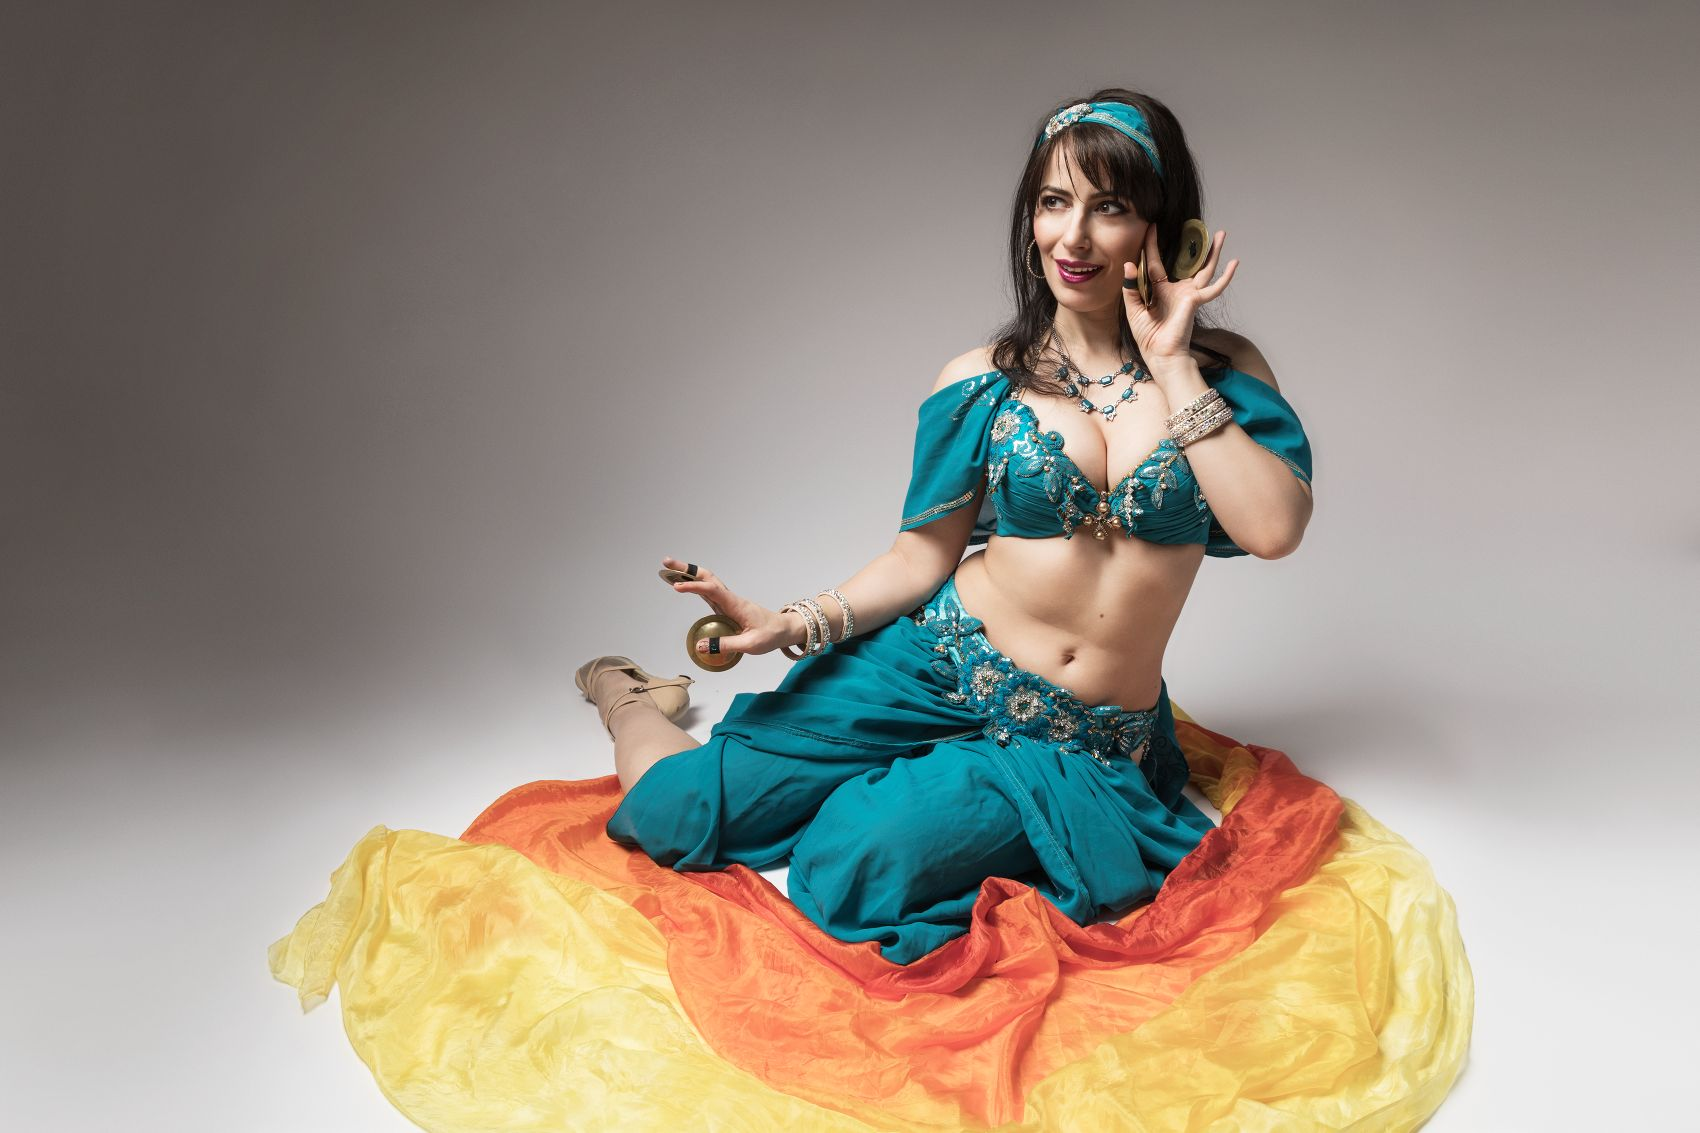 Michelle belly dance Jasmine costume